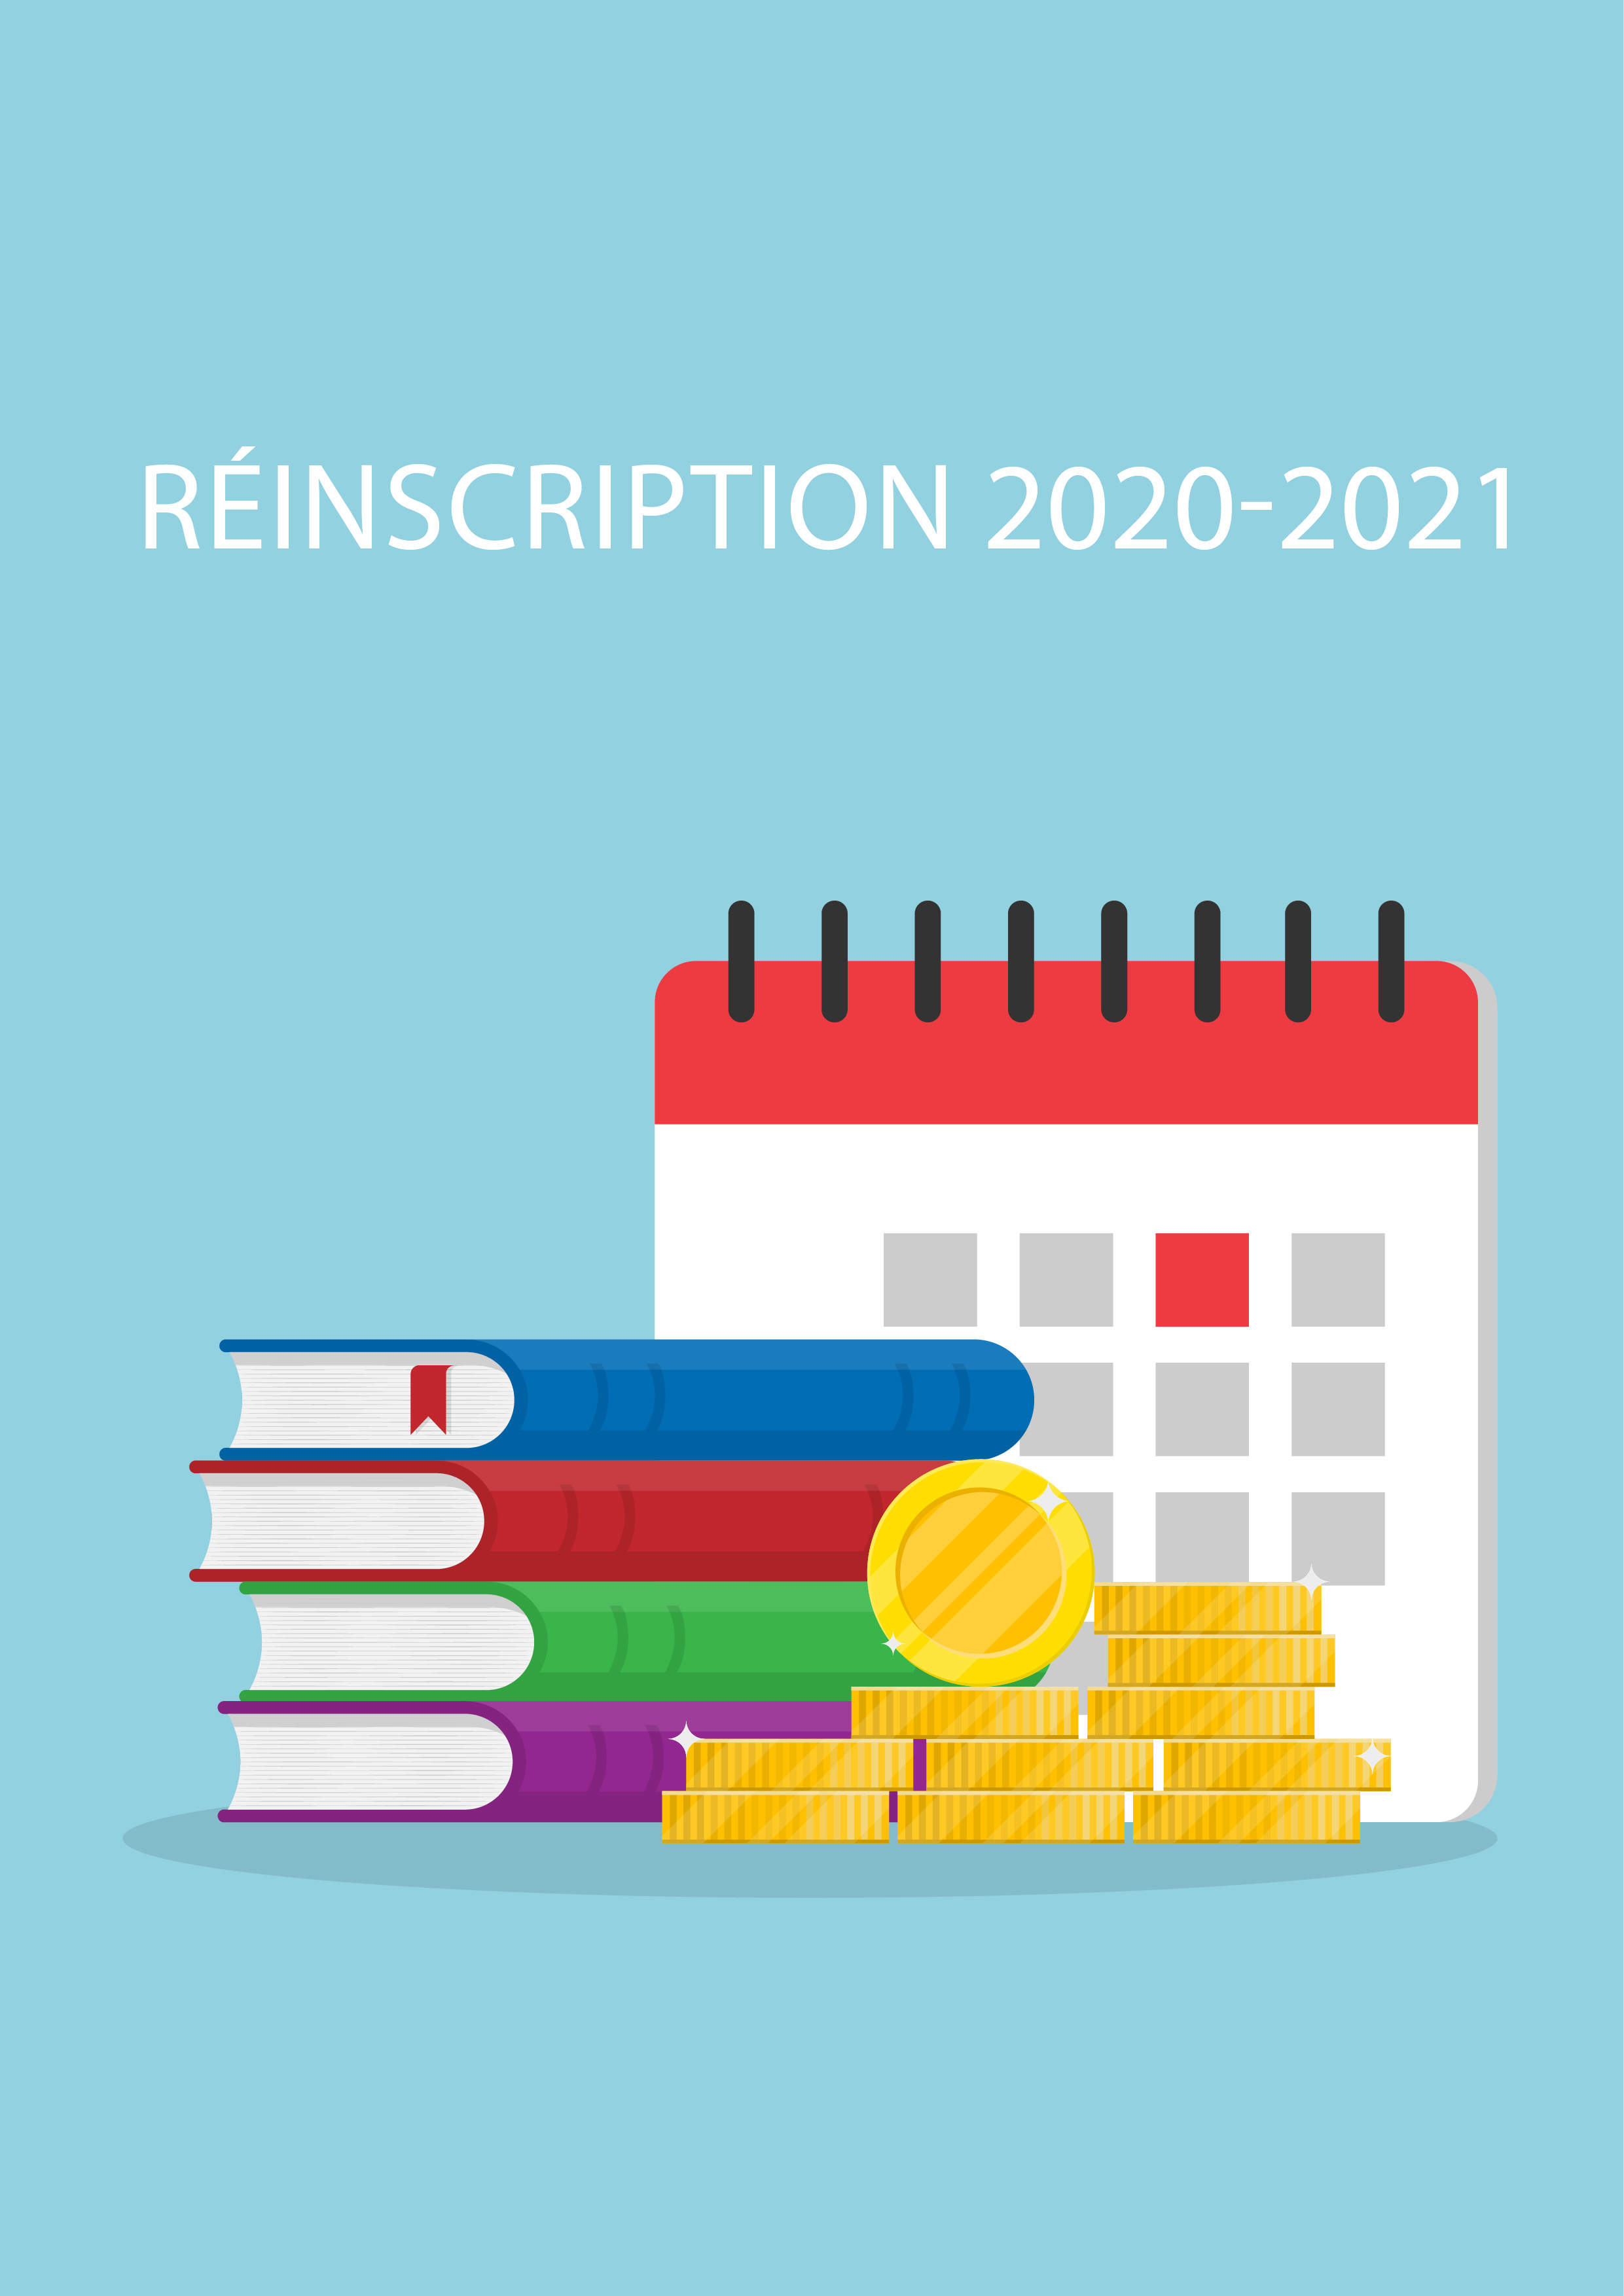 Réinscription 2020-2021